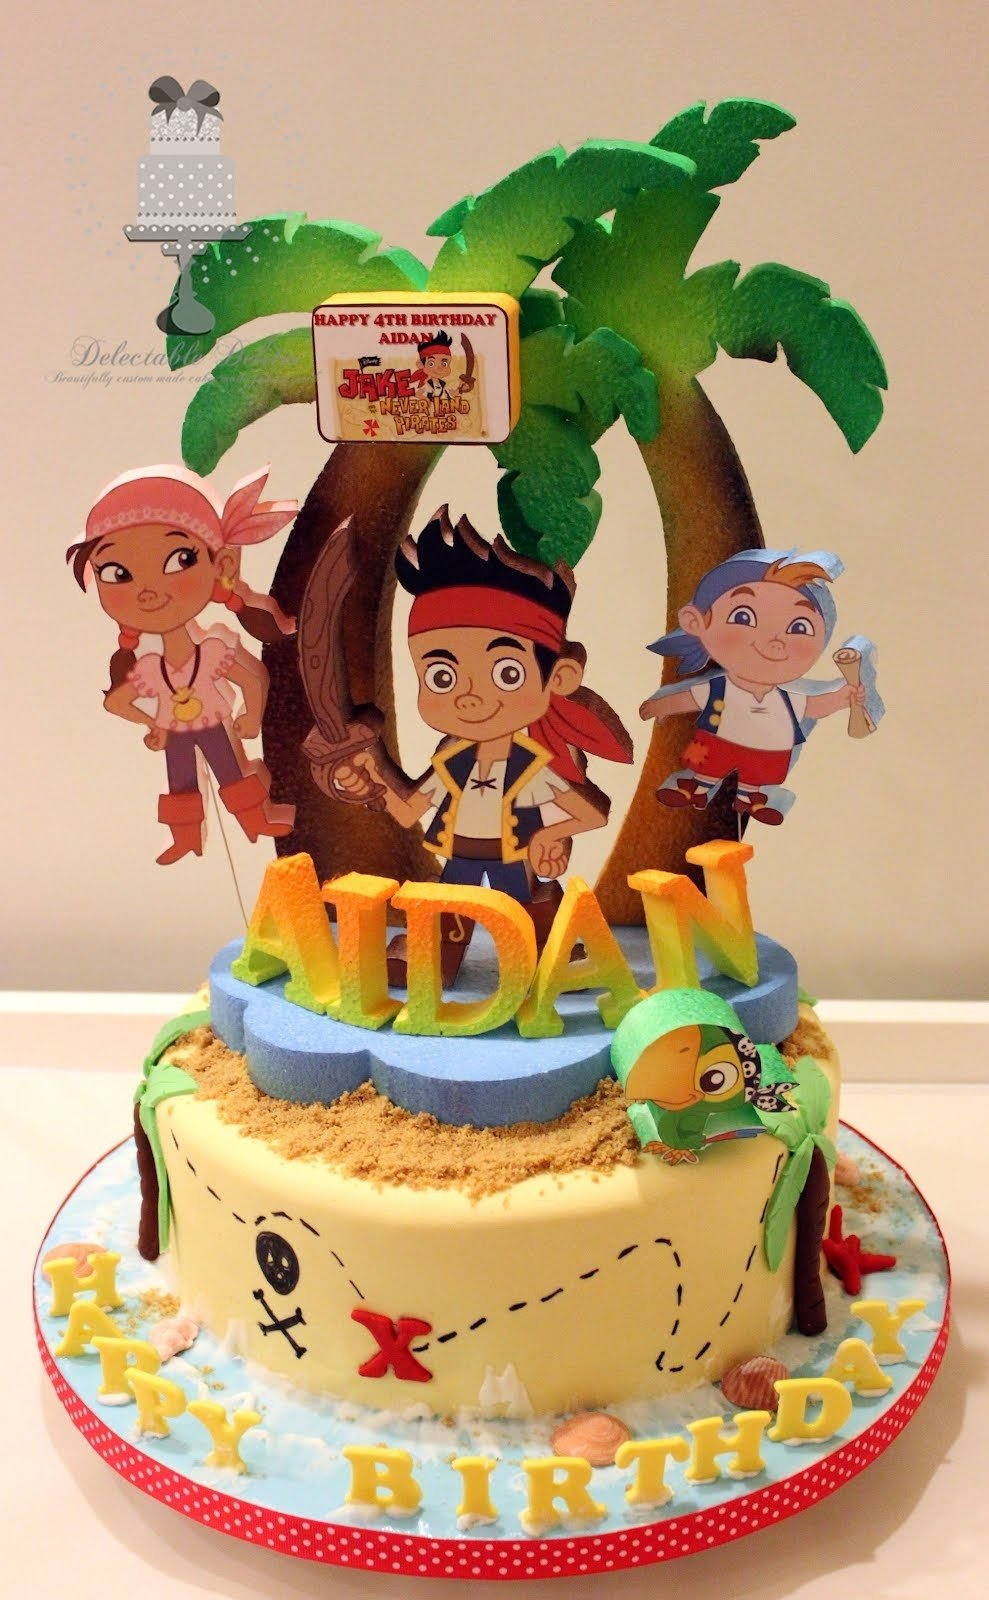 10 Lovable Jake And The Neverland Pirates Cake Ideas jake and the neverland pirates cake 2018 neverland cake and 2021